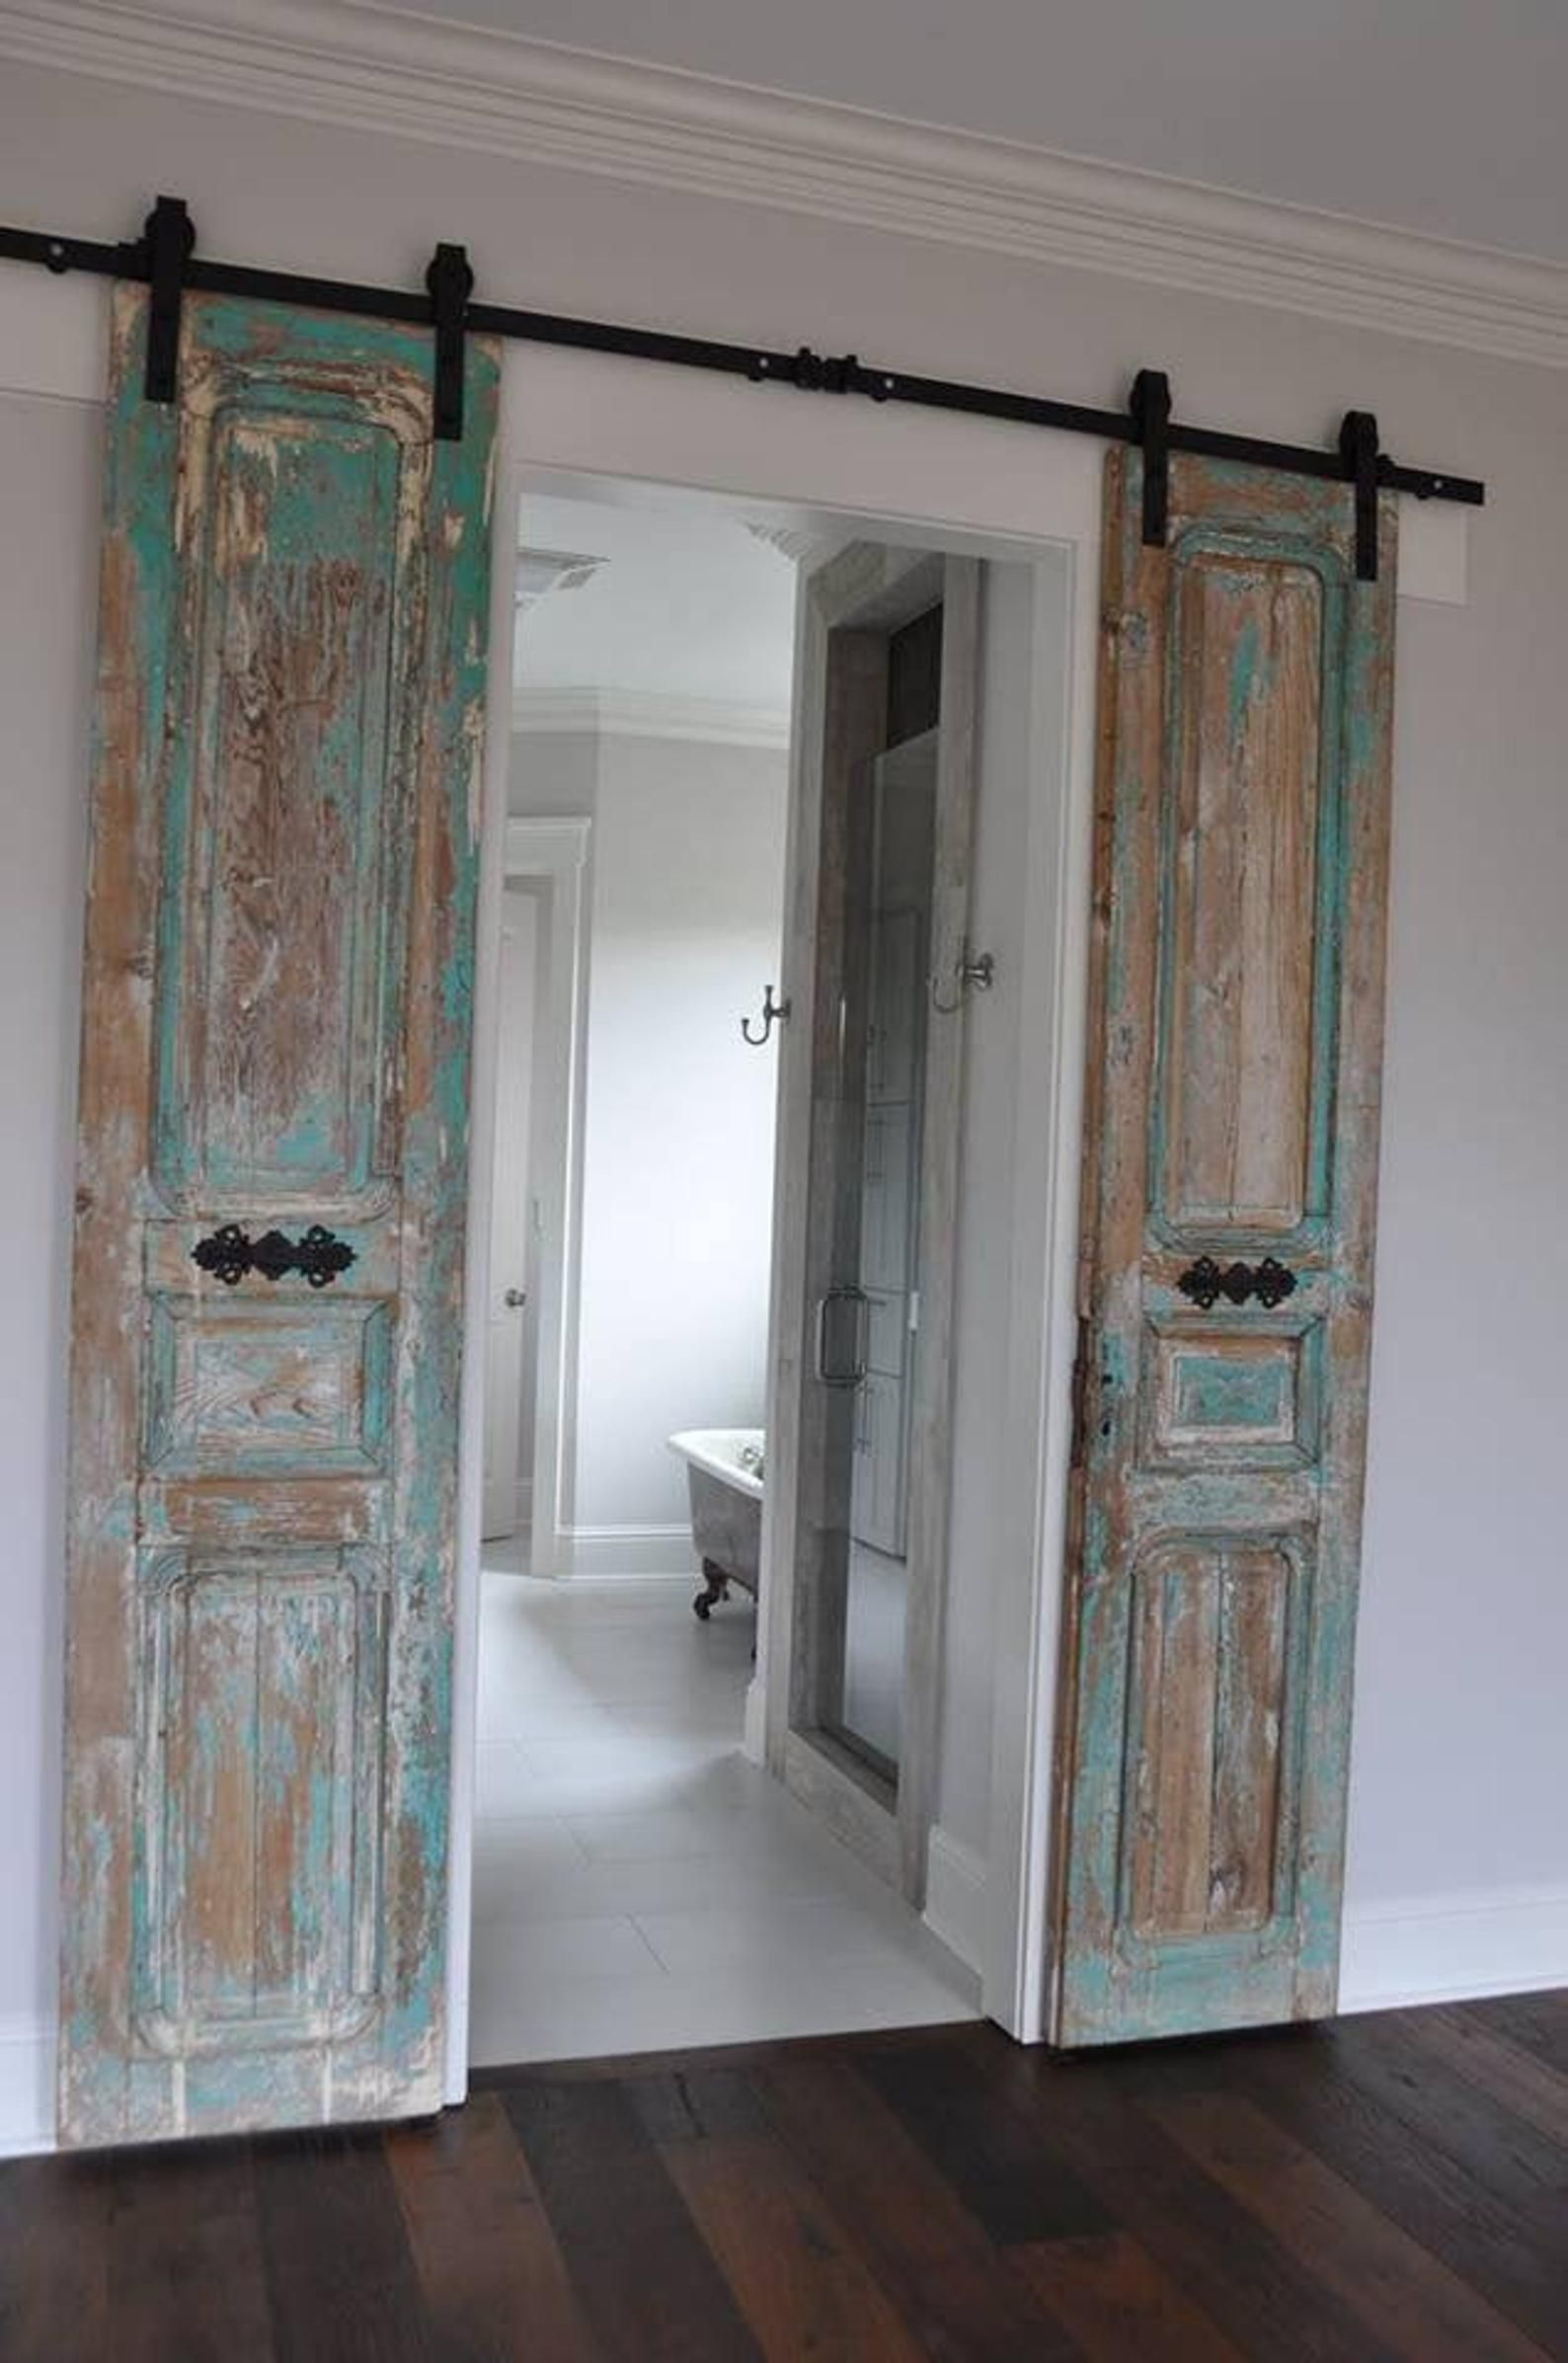 Vintage Door Replica Vintage Doors Barn Door Barn Doors Custom Made By Foo Foo La La Sold Individually Jean Vintage Doors Interior Barn Doors Sliding Barn Door Hardware